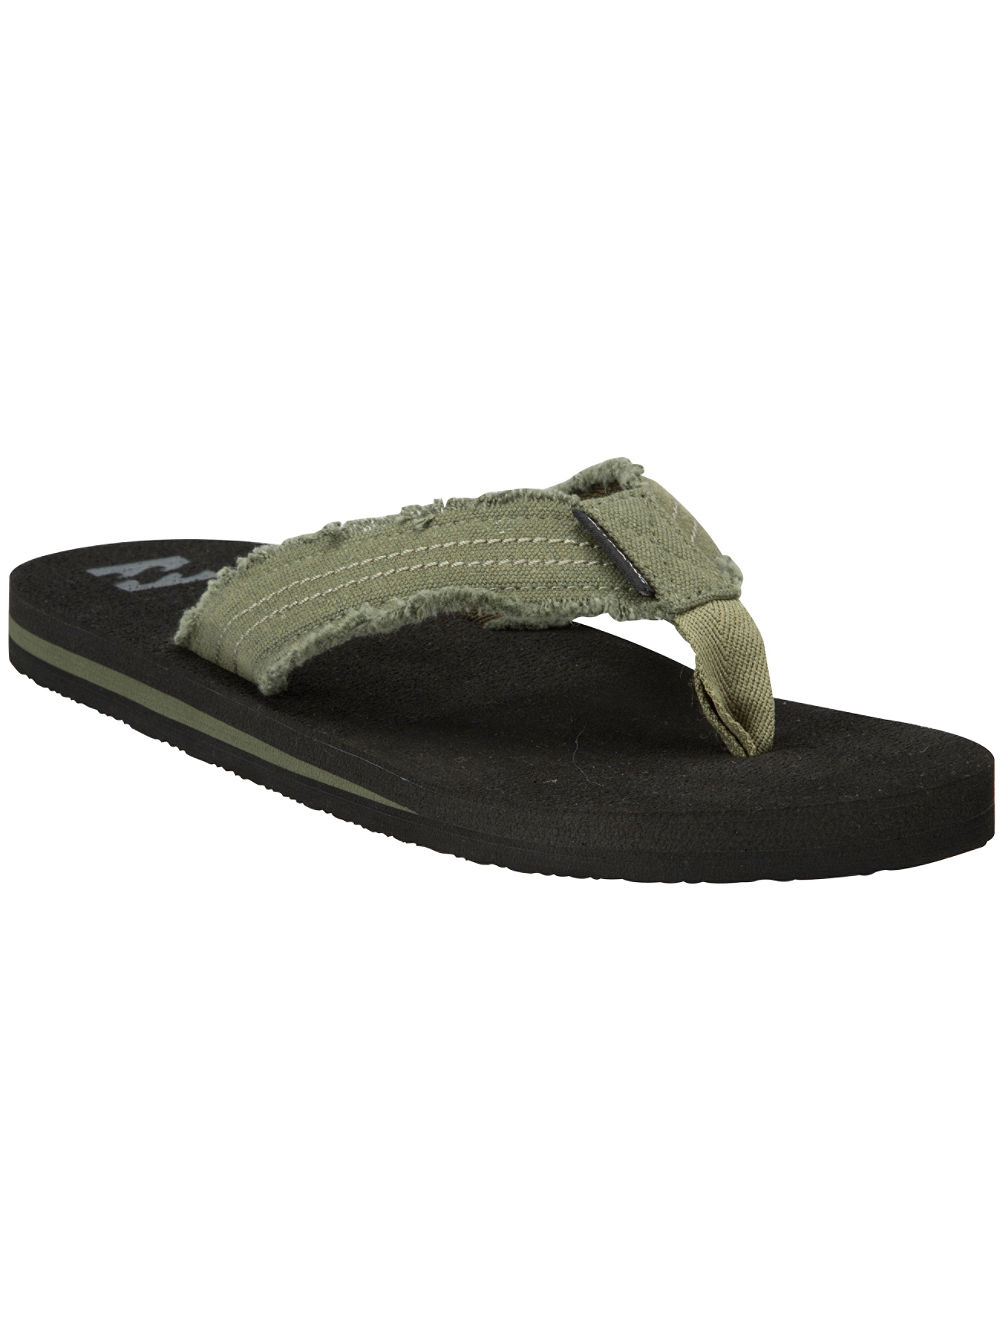 billabong-operator-sandals